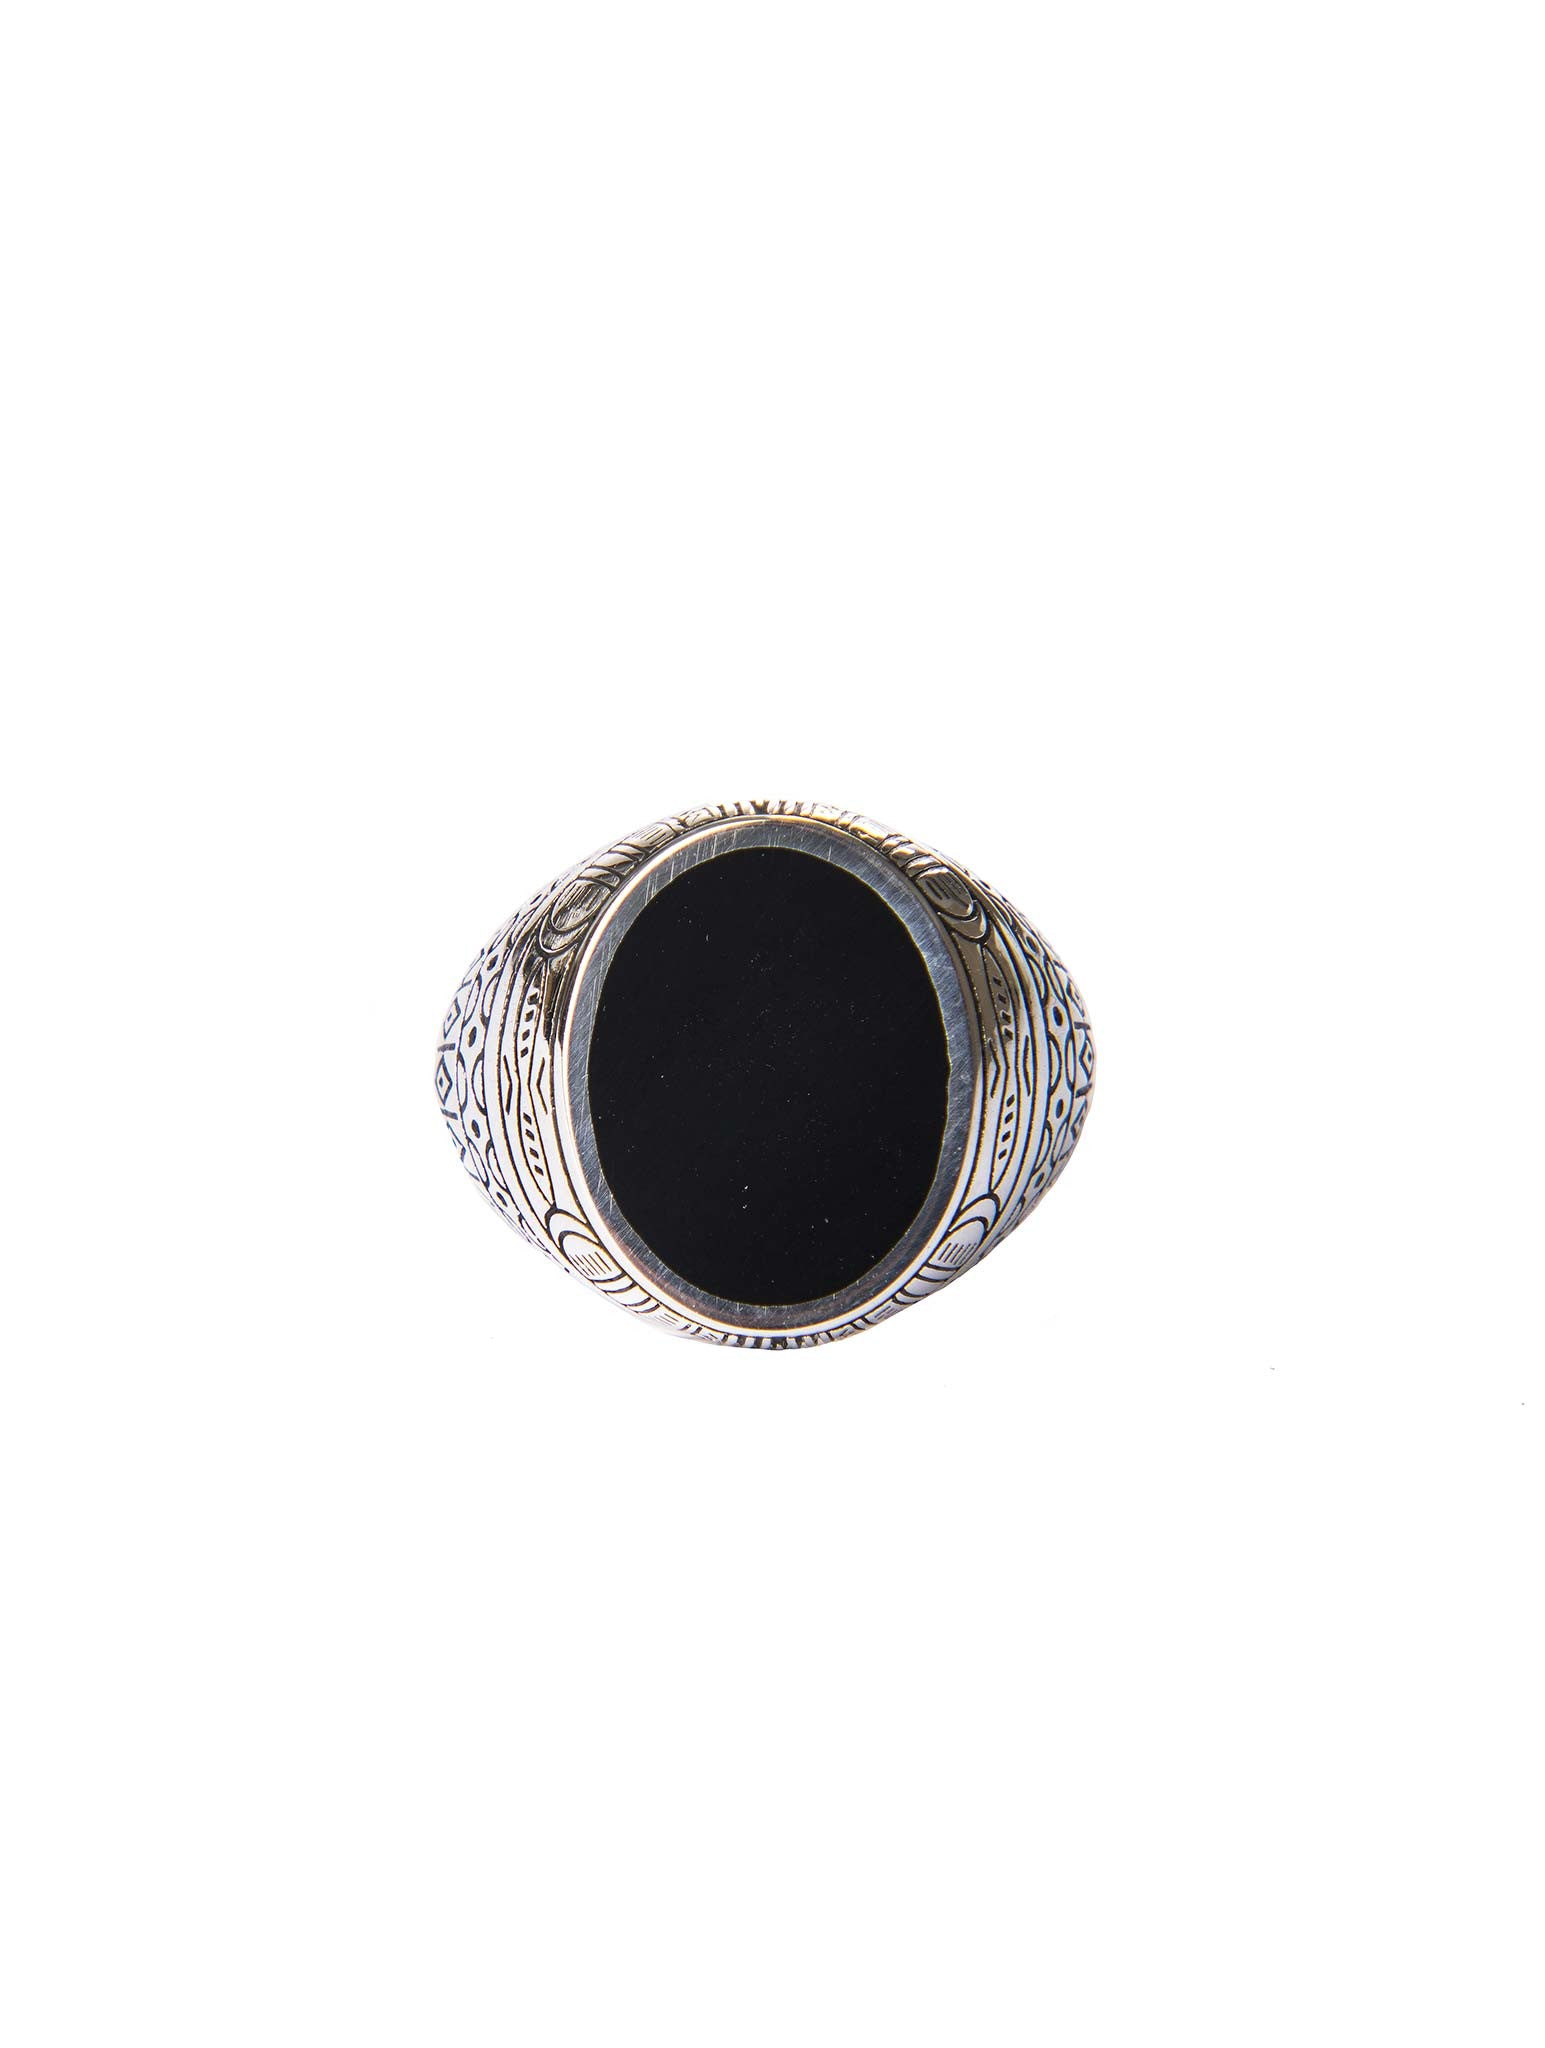 MEN'S ACCESSORIES | TUAREG RING | NOHOW STYLE